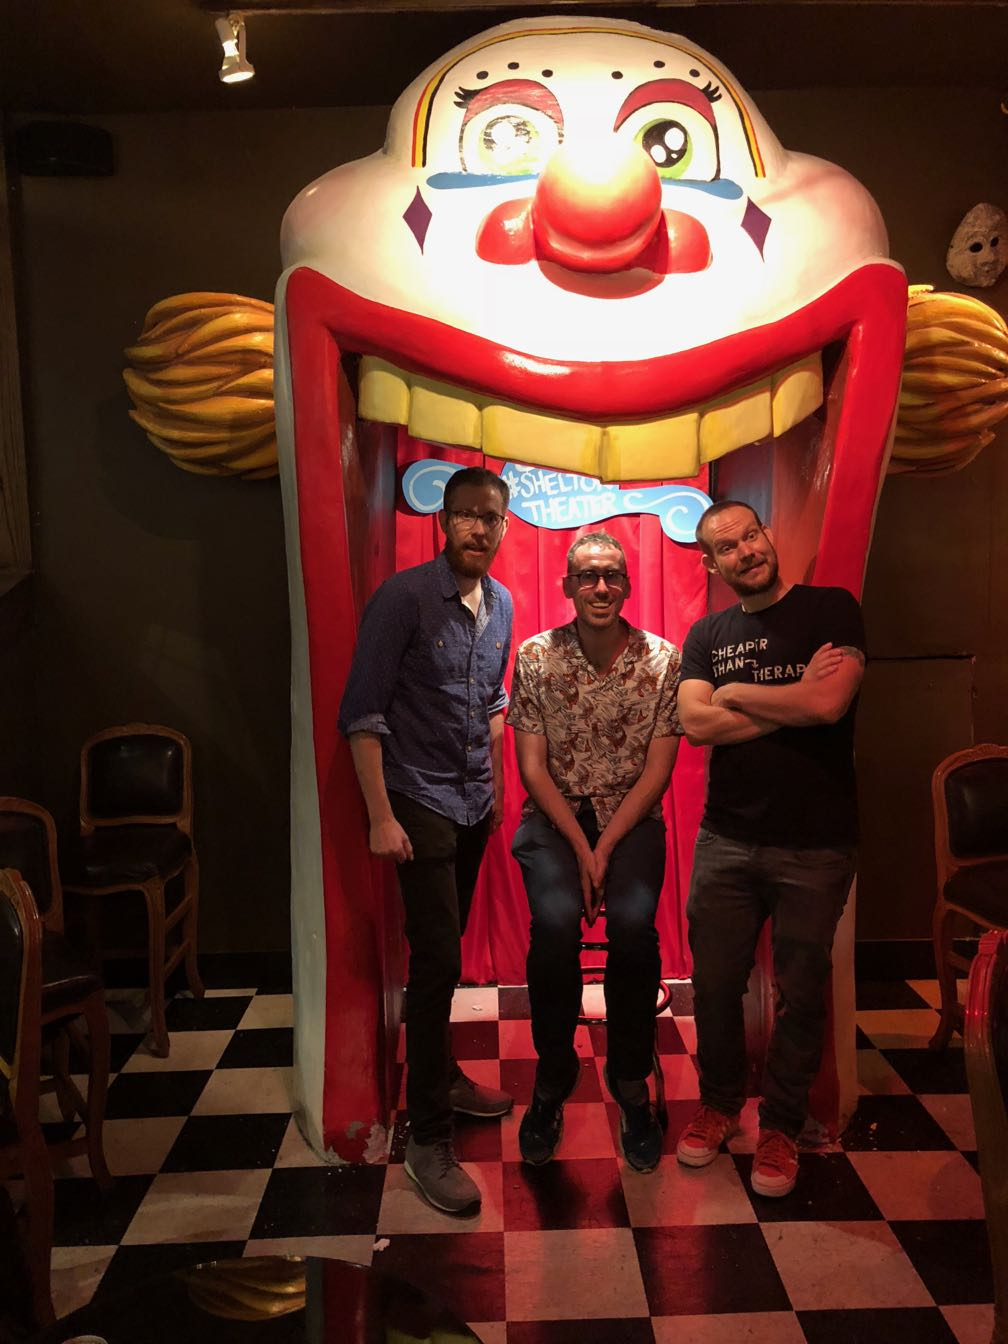 Scott Simpson, Ben Jennings, and Jon Allen standing inside a bizarre clown in a dimly lit theater lobby.